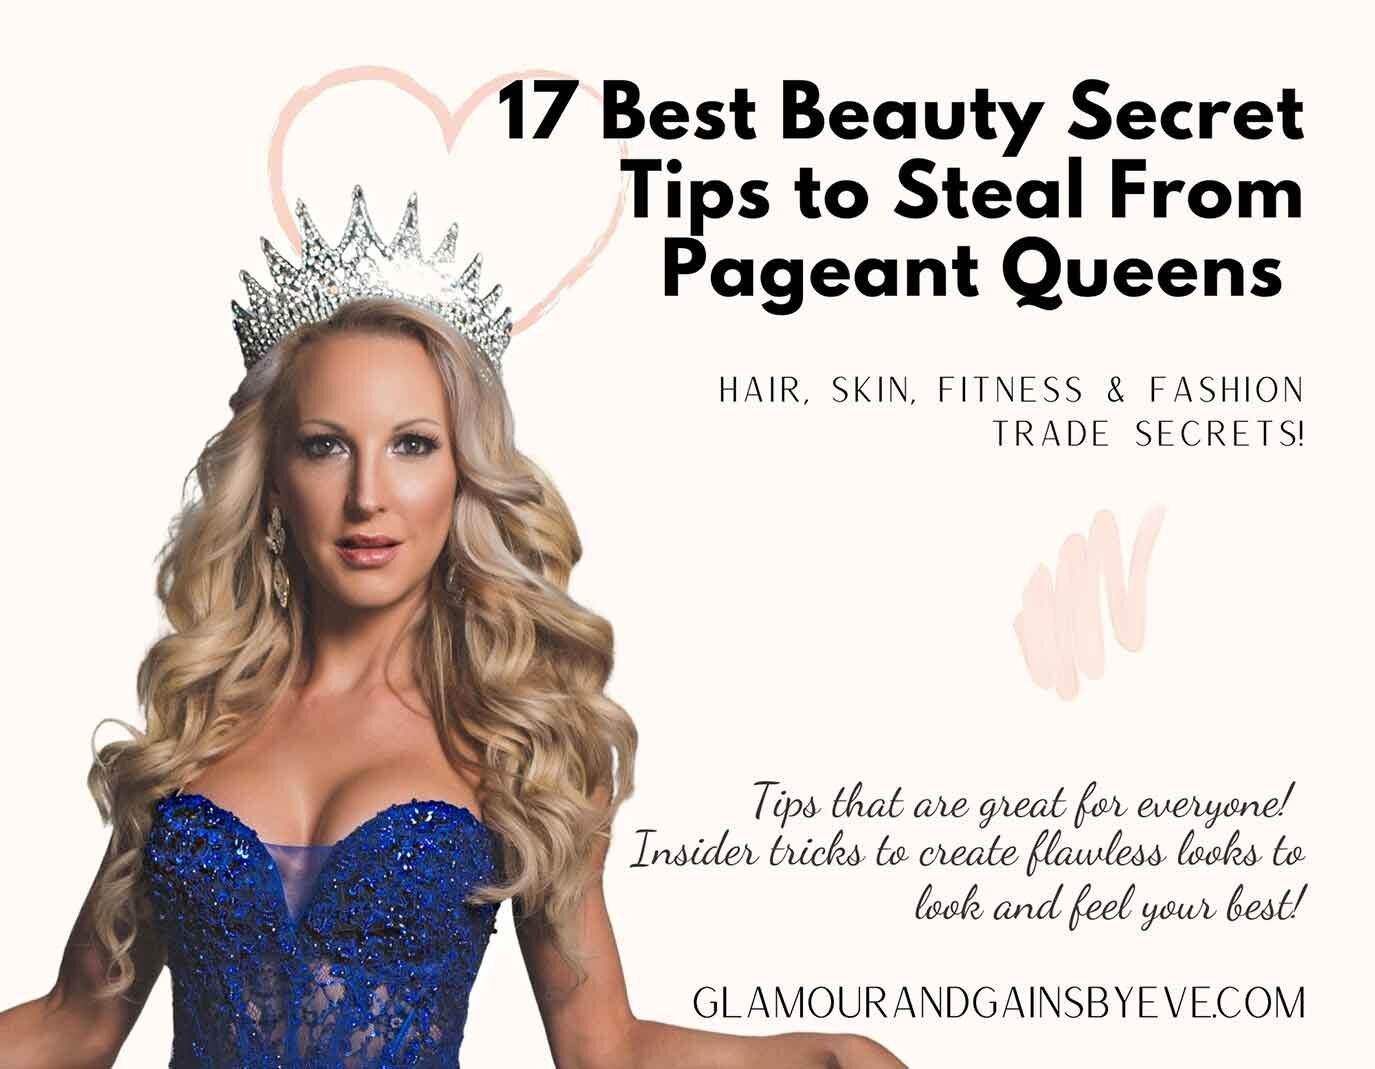 9 Beauty Secrets  Behind the scenes of a beauty pageant